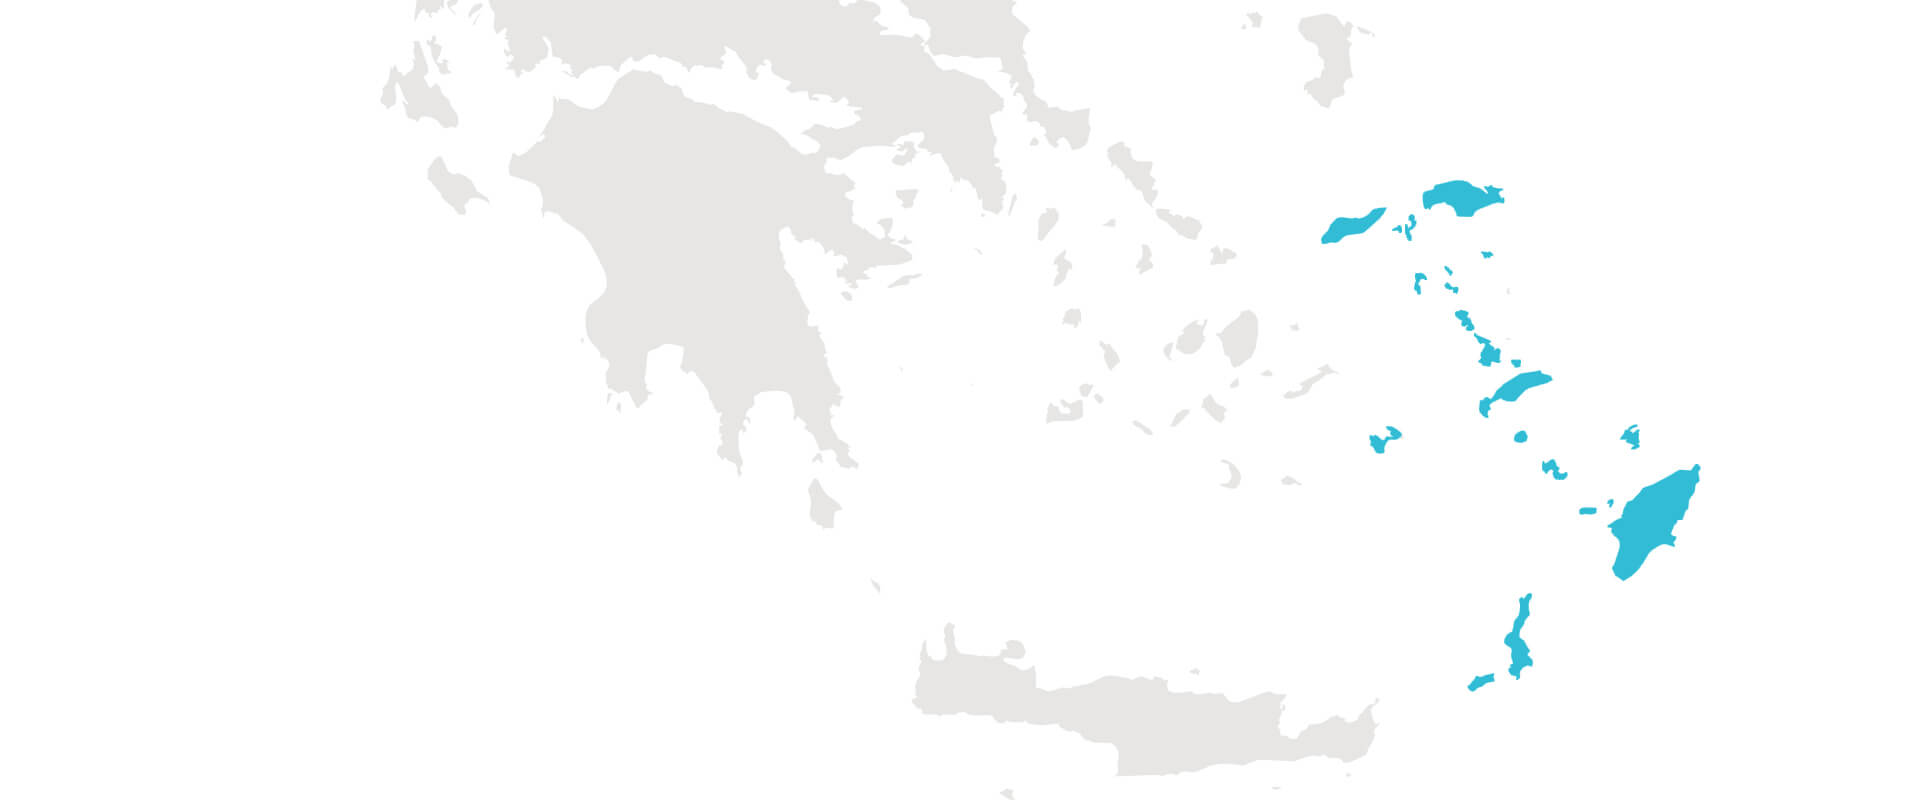 dodecanese islands choose greece for summer vacation map